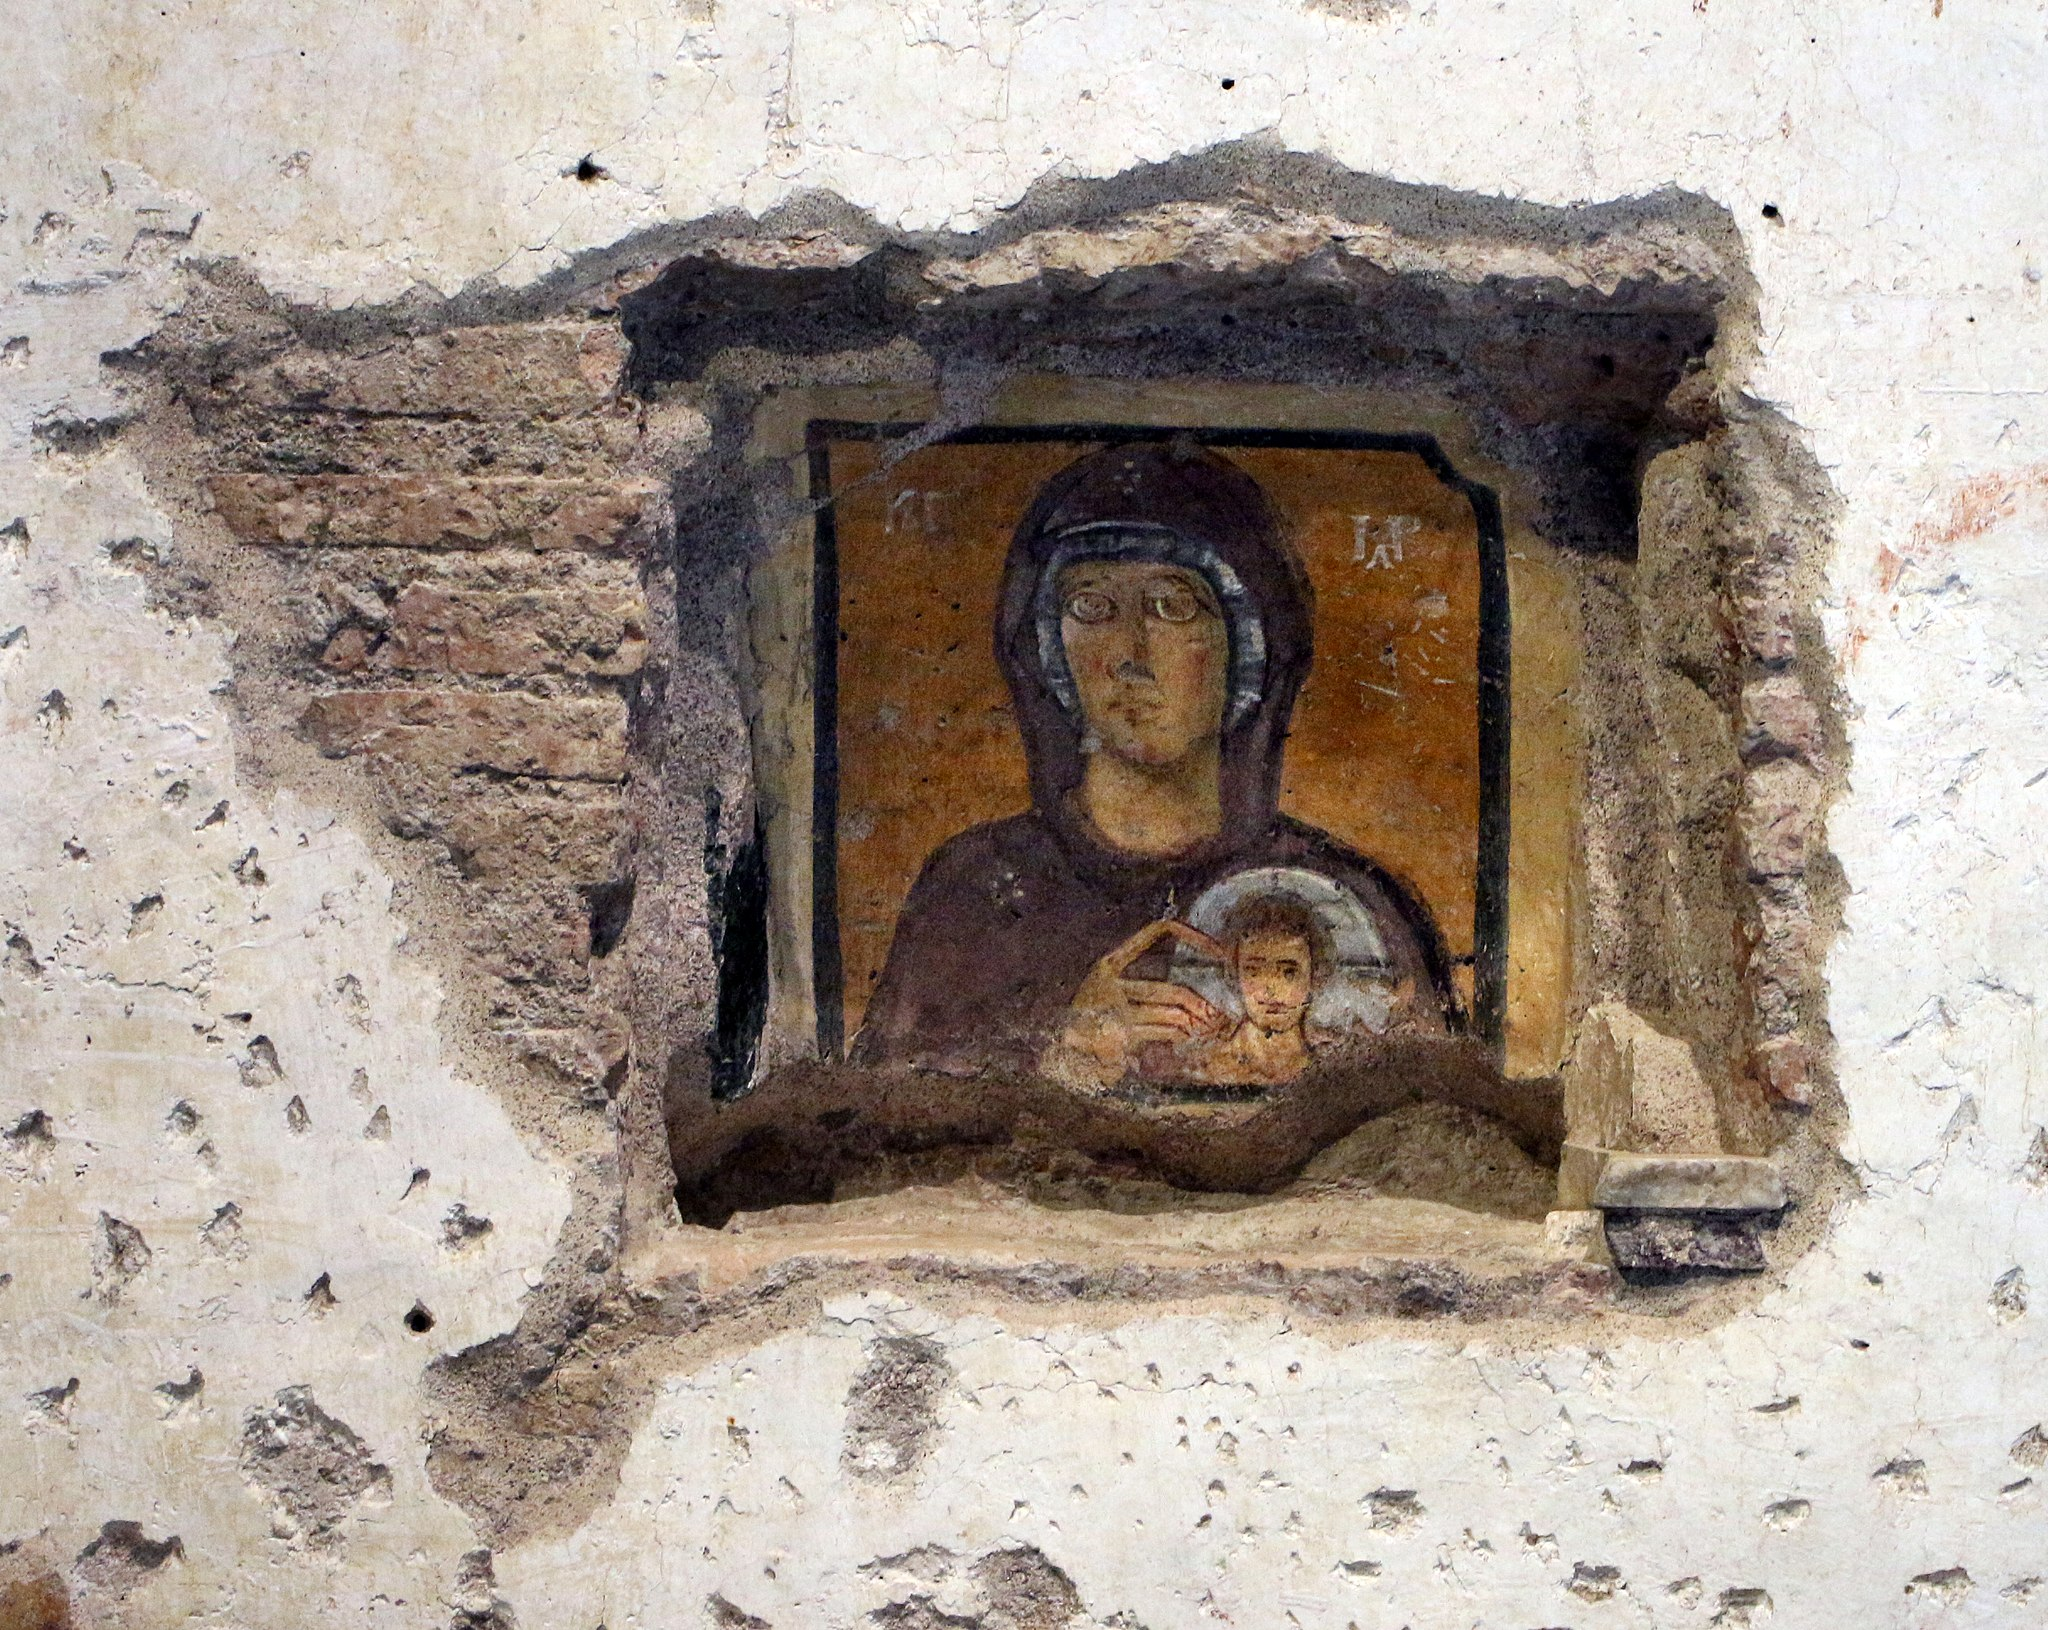 Santa Maria Antiqua opens to the public after 30 years